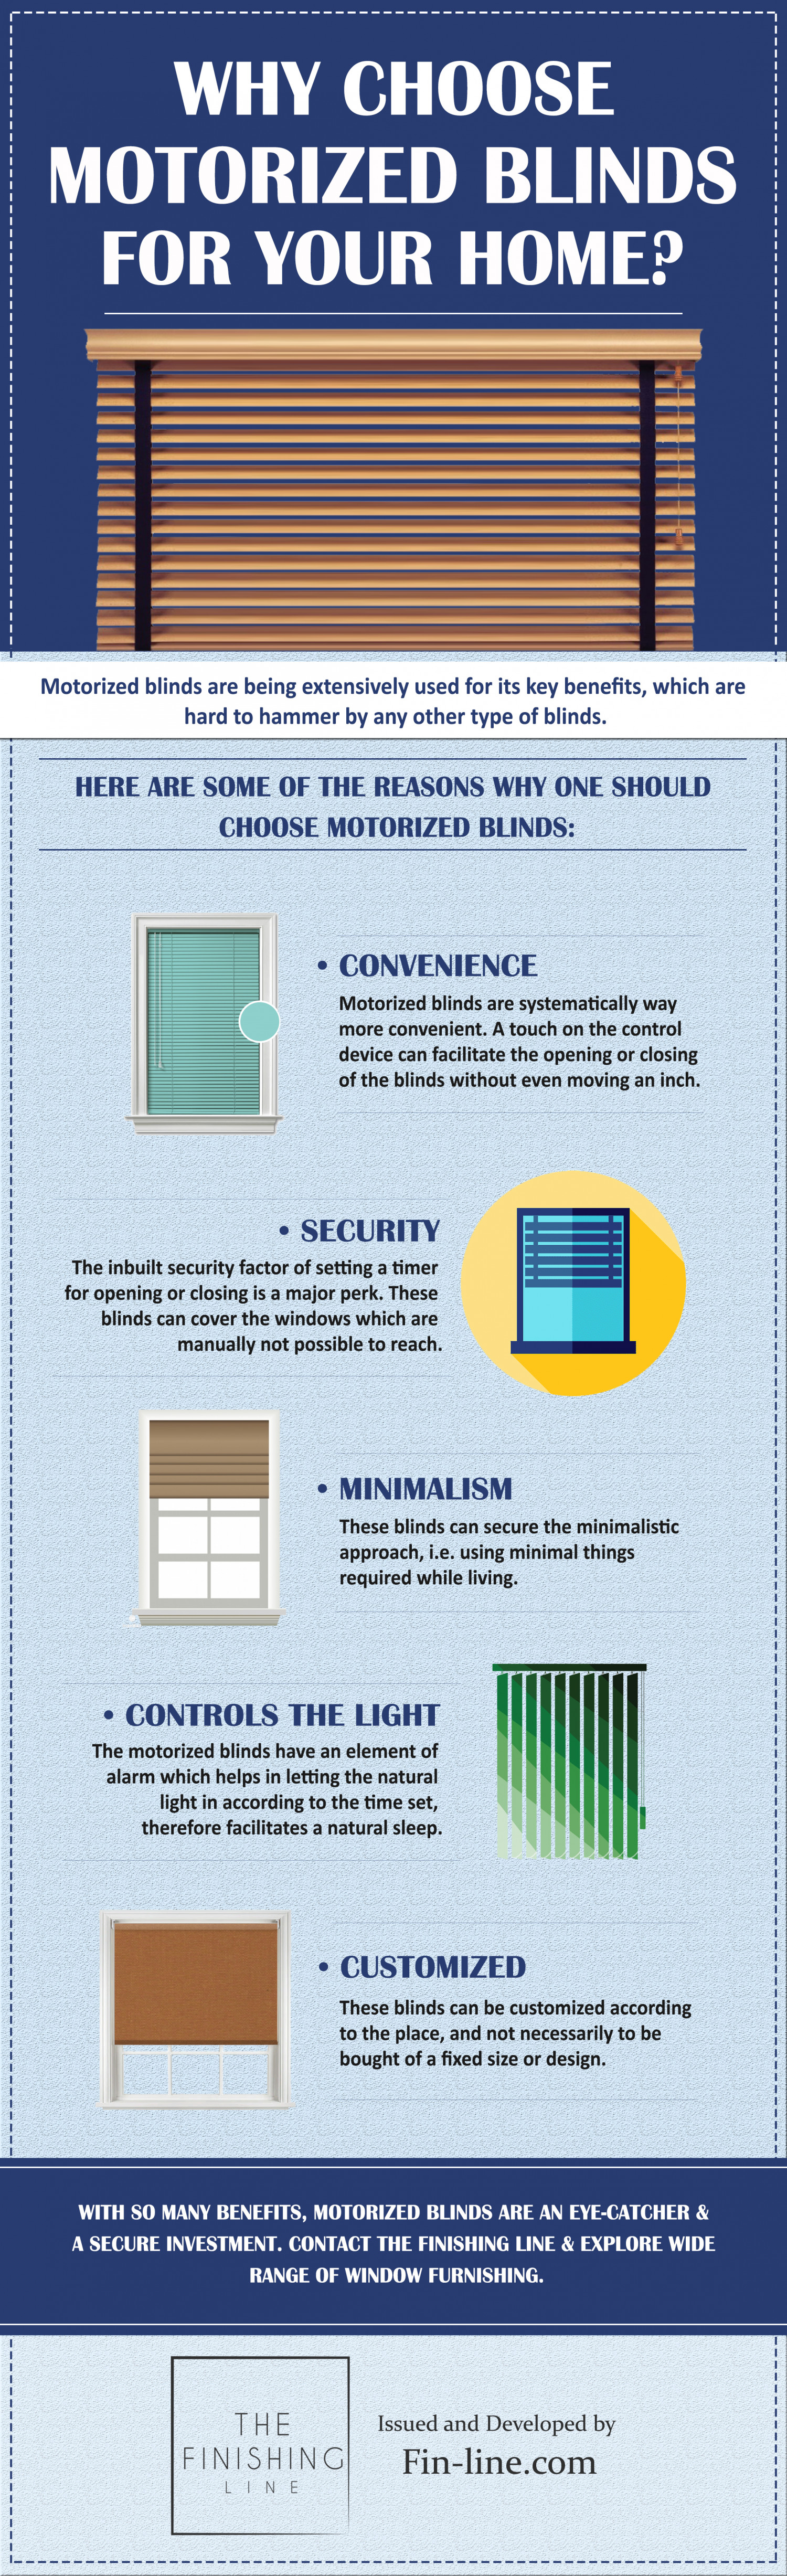 Why Choose Motorized Blinds for your Home? Infographic